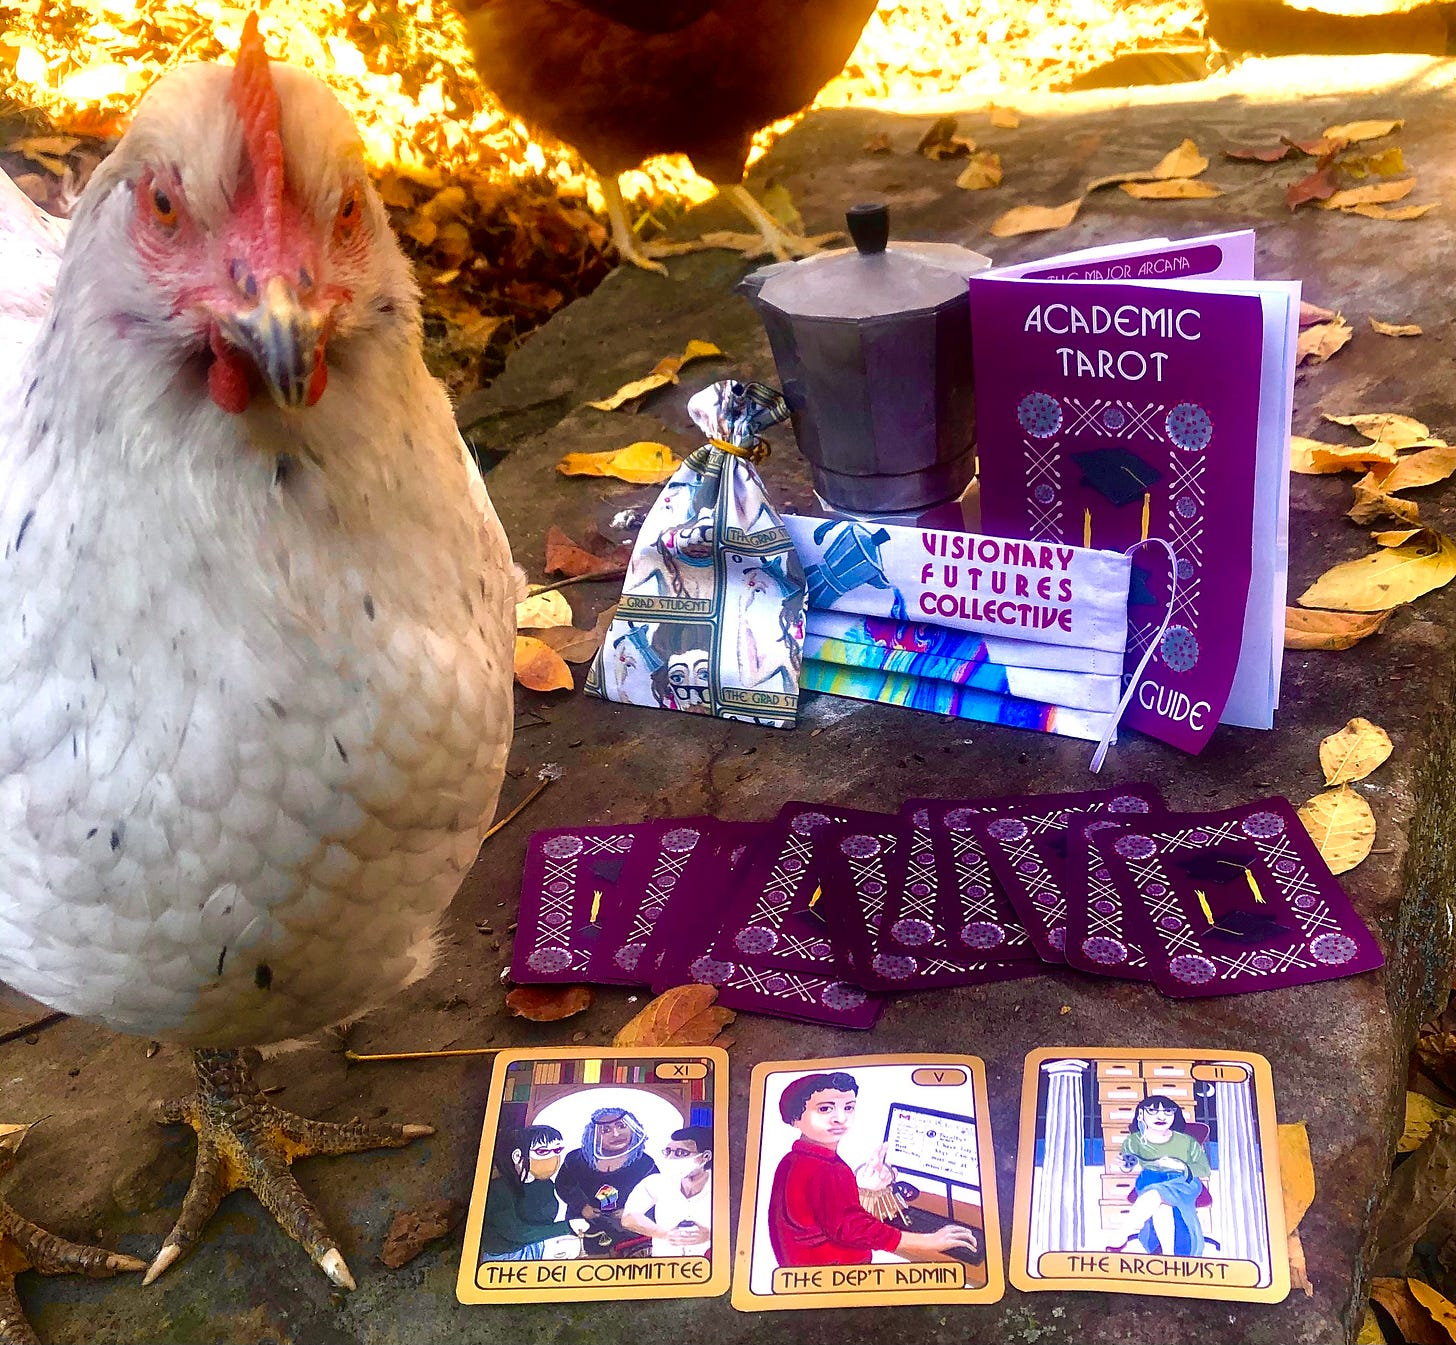 A white chicken stares into the camera next an array of VFC swag, including a VFC covid mask, a printed tarot deck, and a booklet.